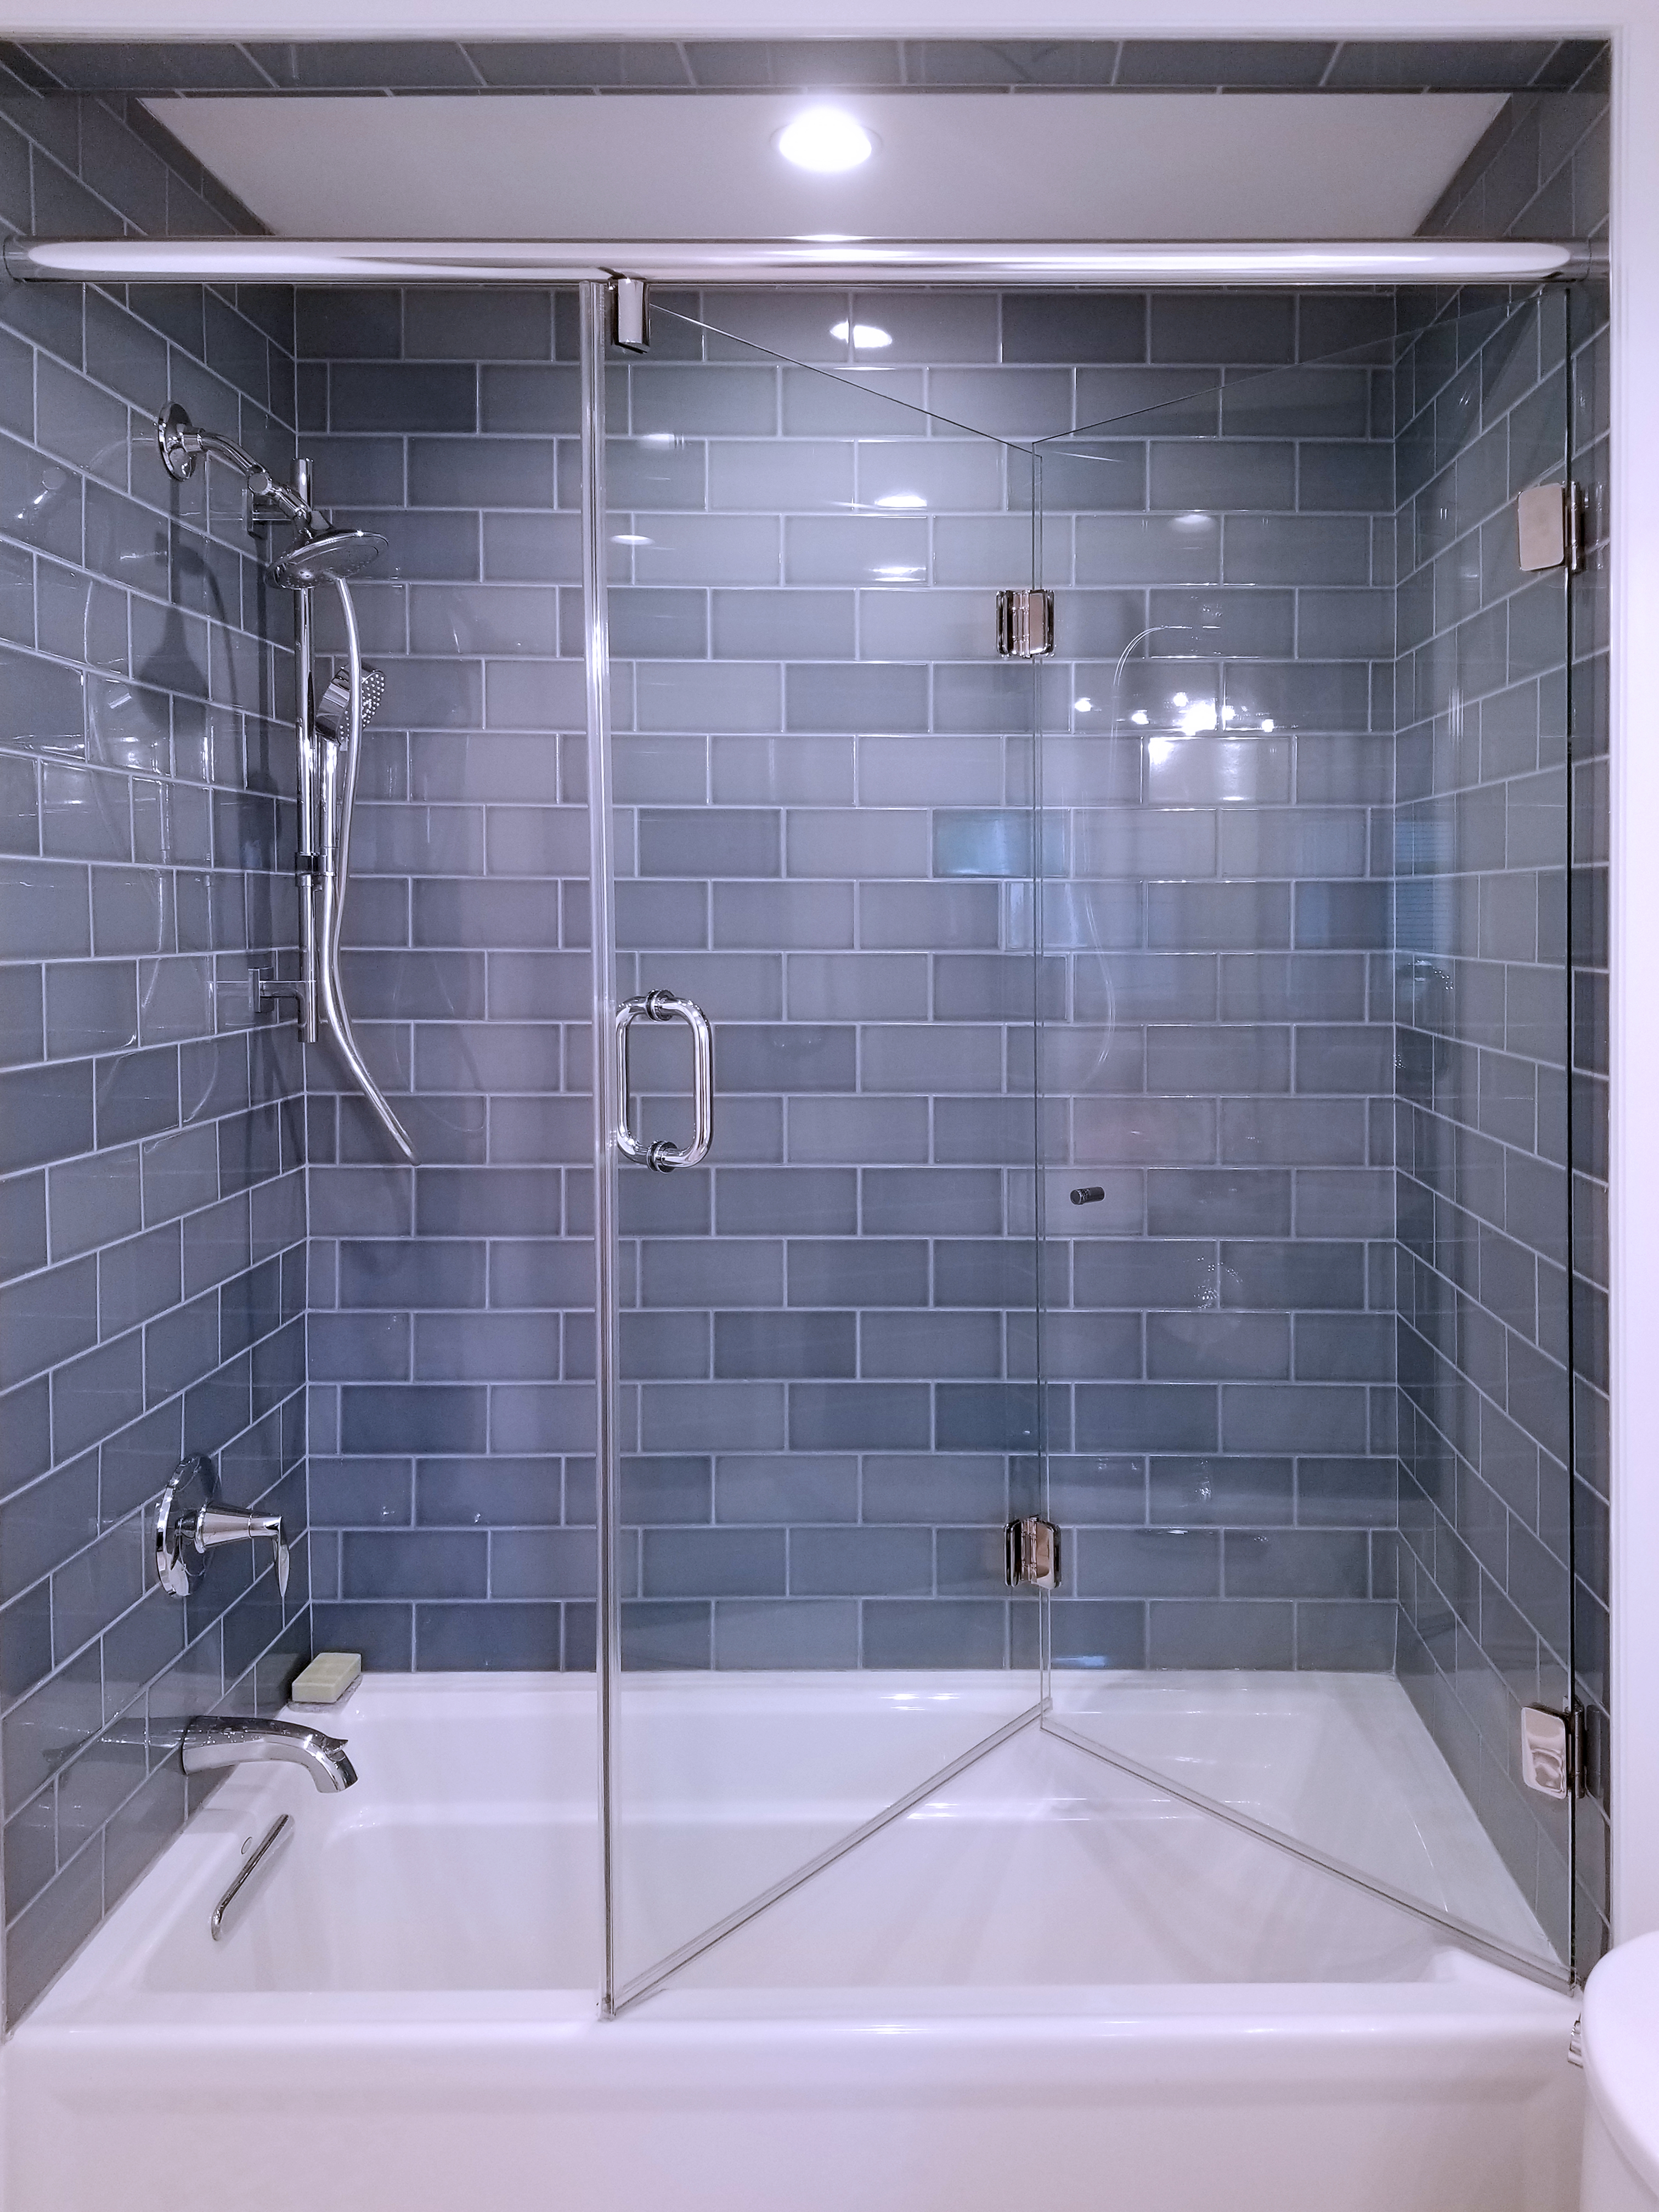 23 - Bi-fold shower door